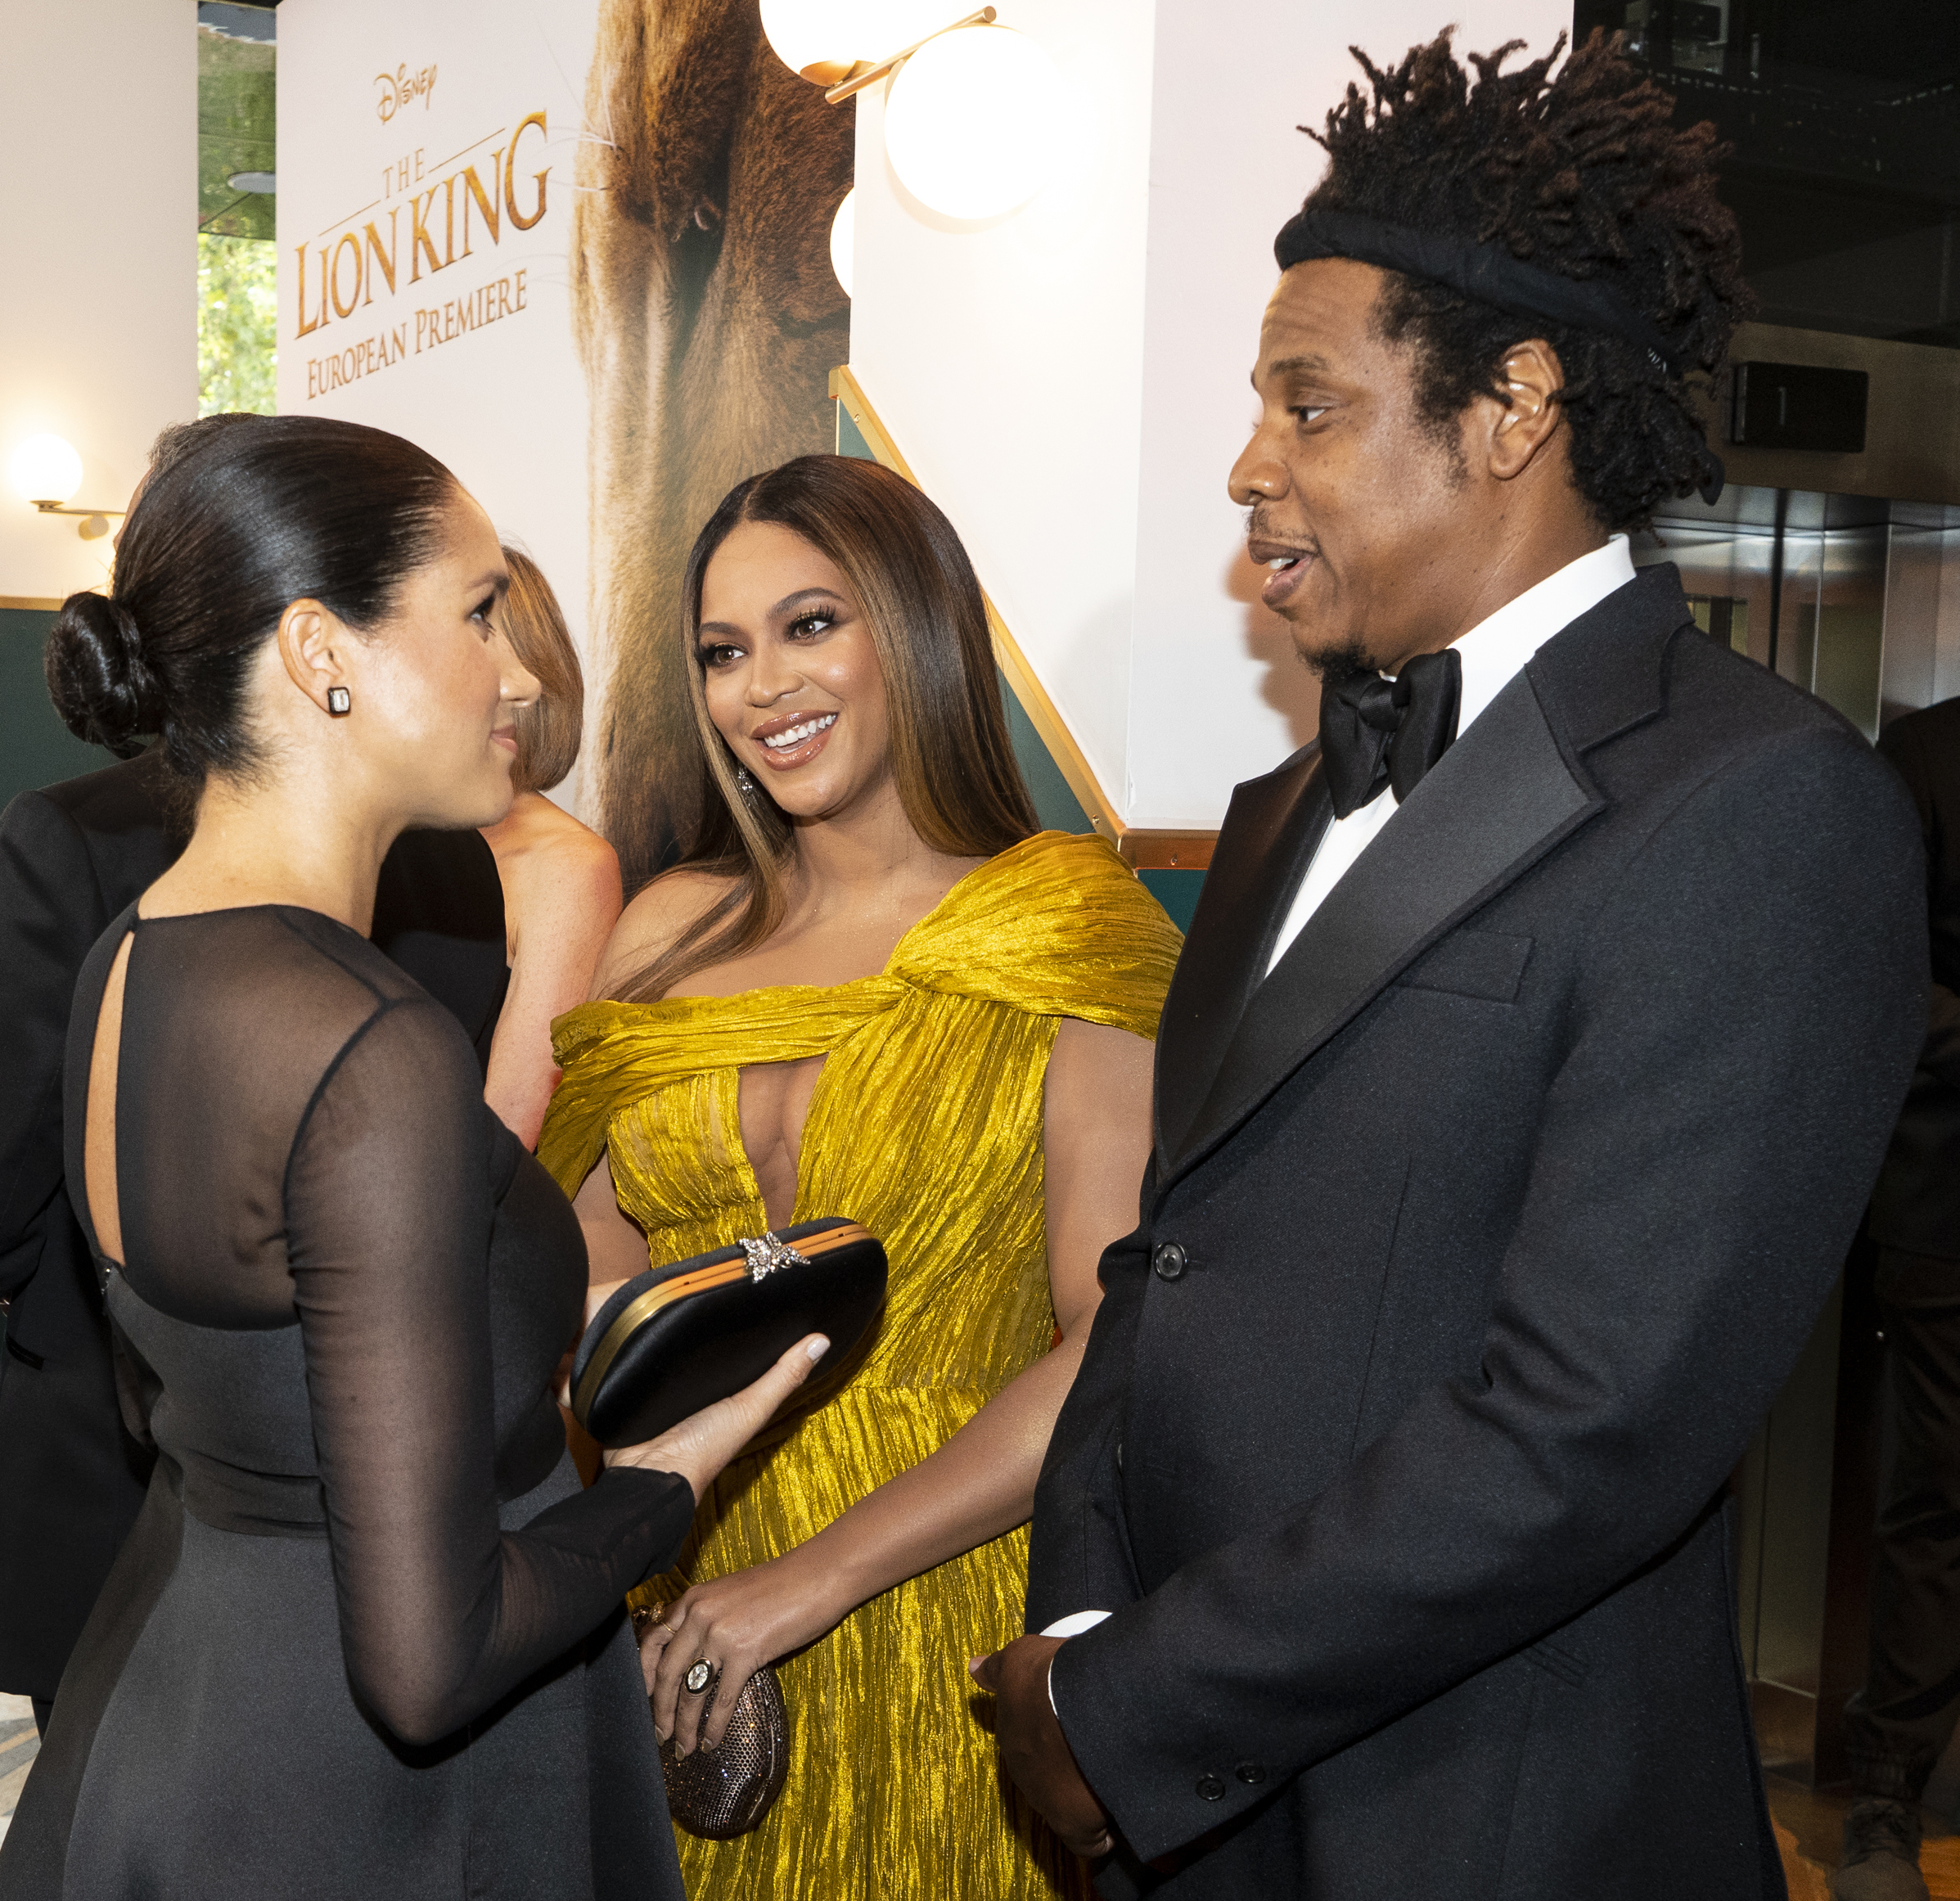 Beyonce and Jay Z meet Meghan Markle at the Lion King movie premiere